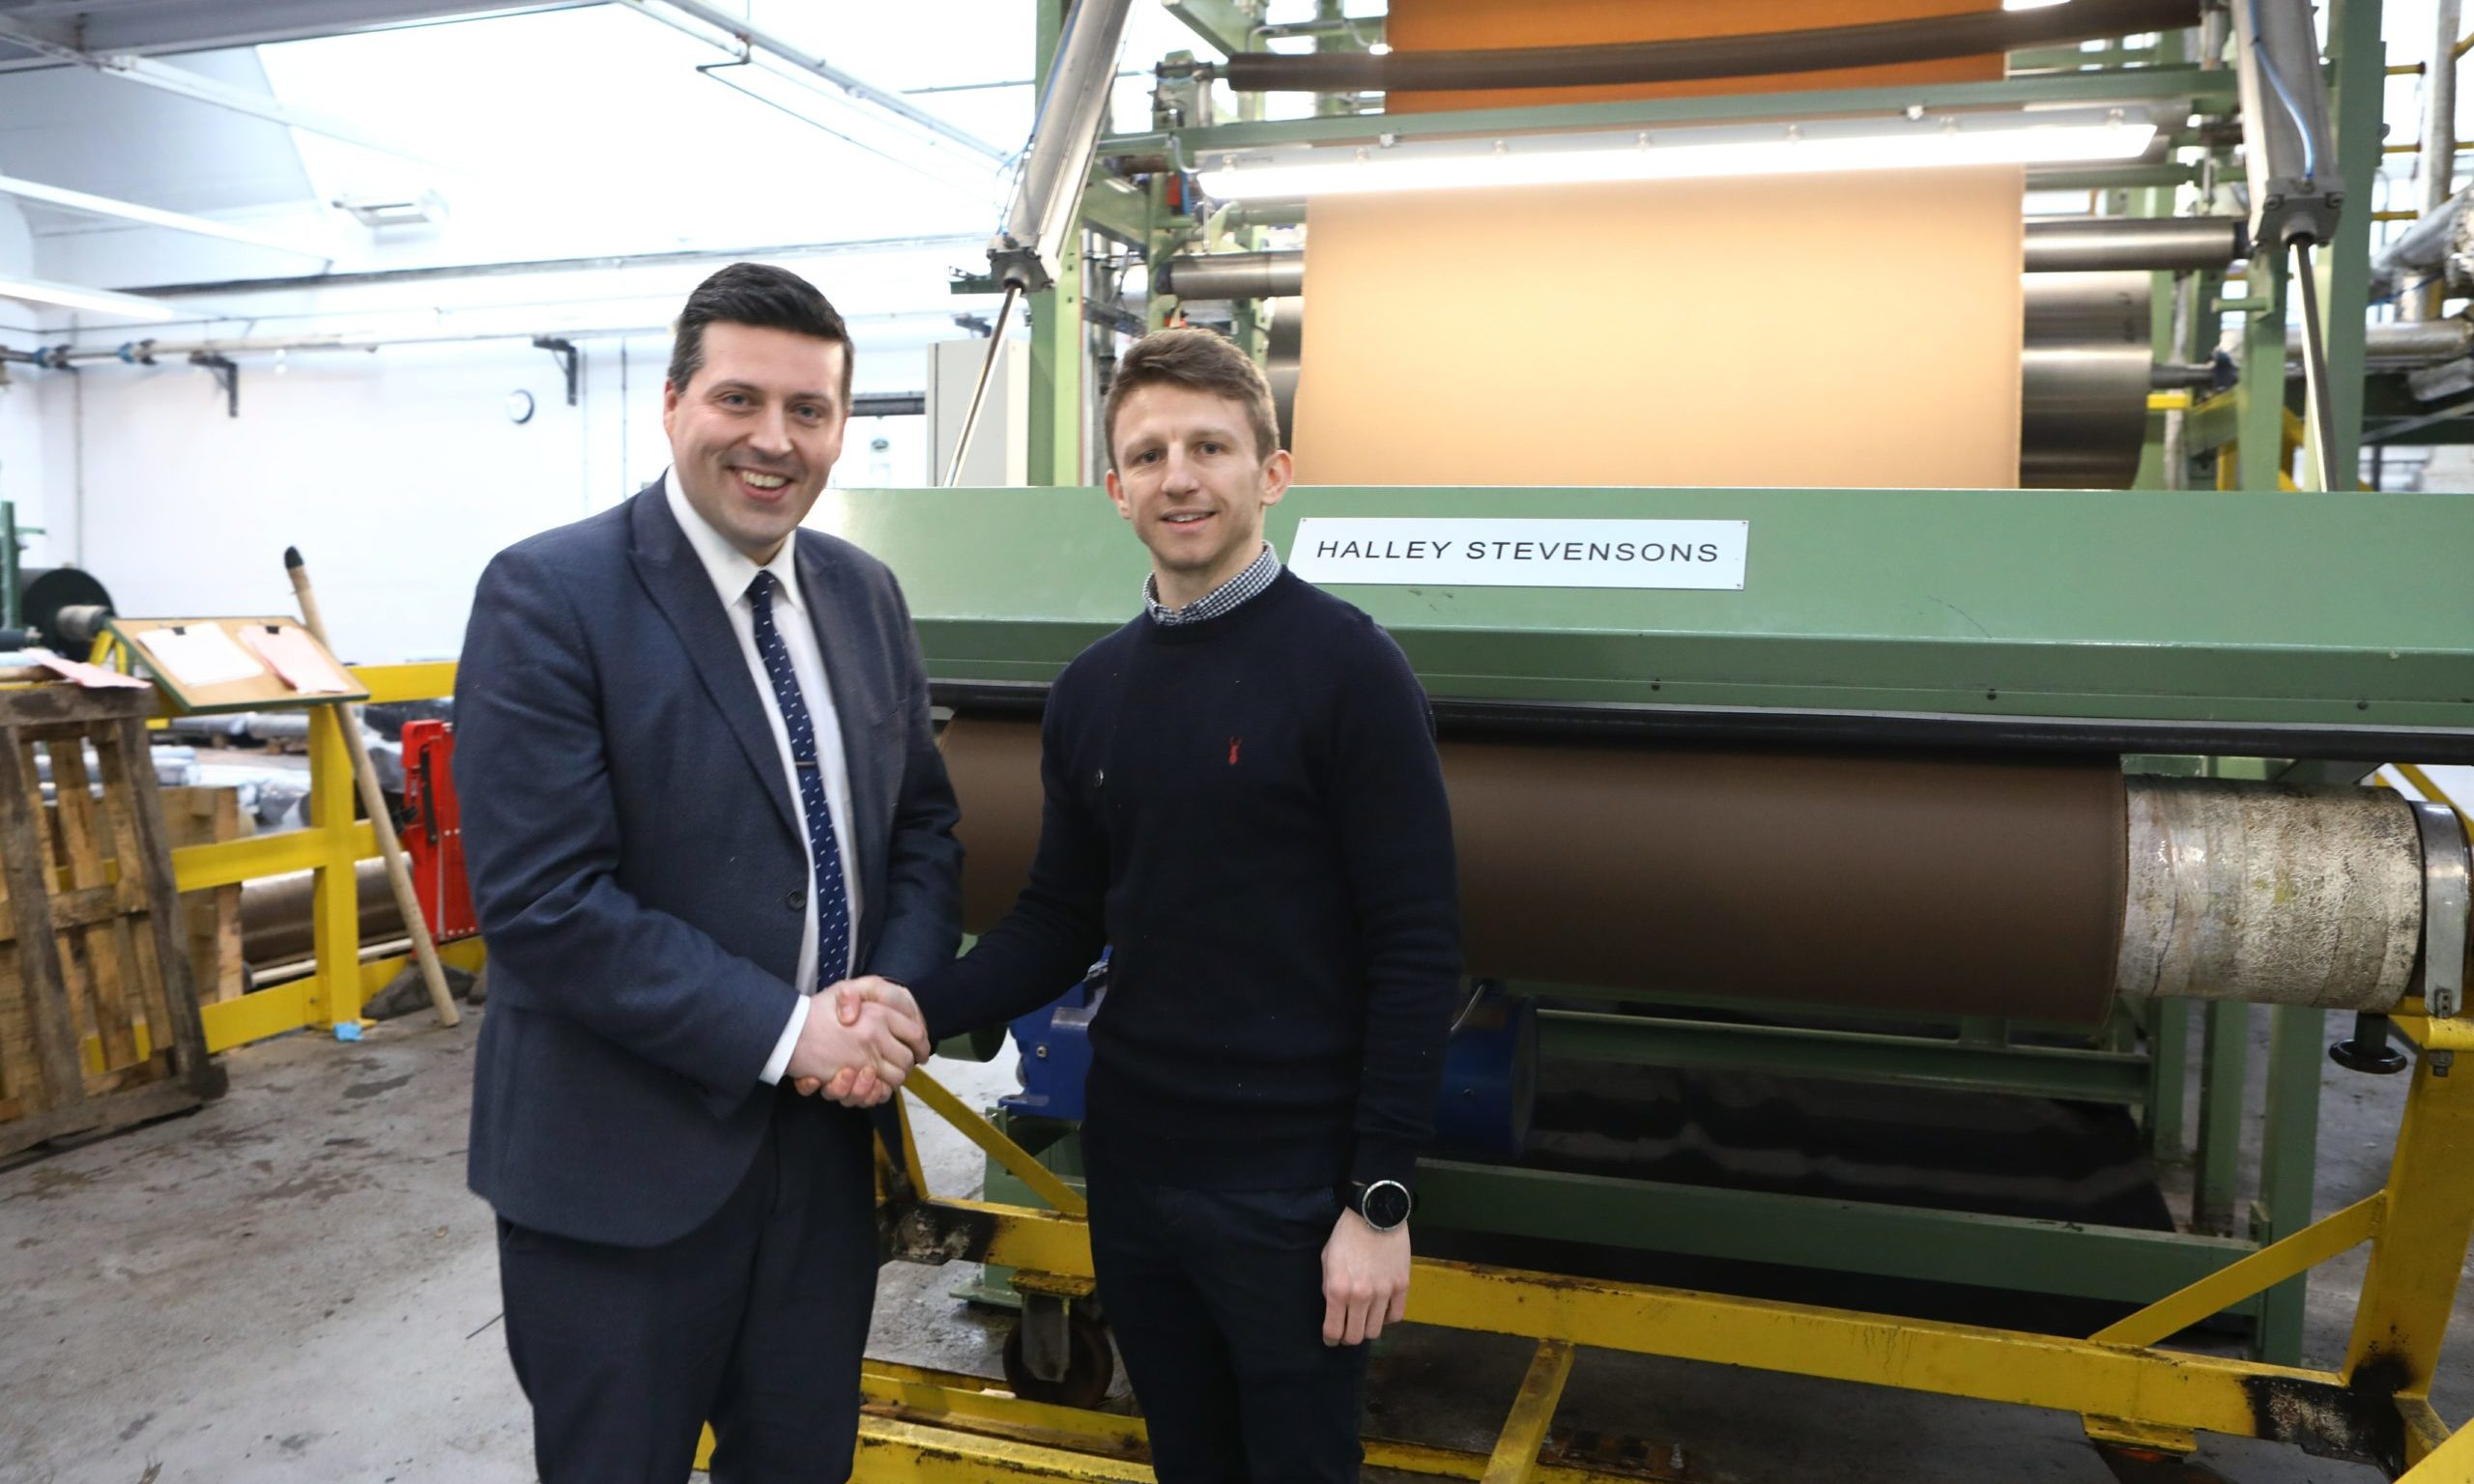 Minister for Business, Fair Work and Skills Jamie Hepburn, left, with Production Manager Billy Tosh, during the visit to Halley Stevensons in Dundee.